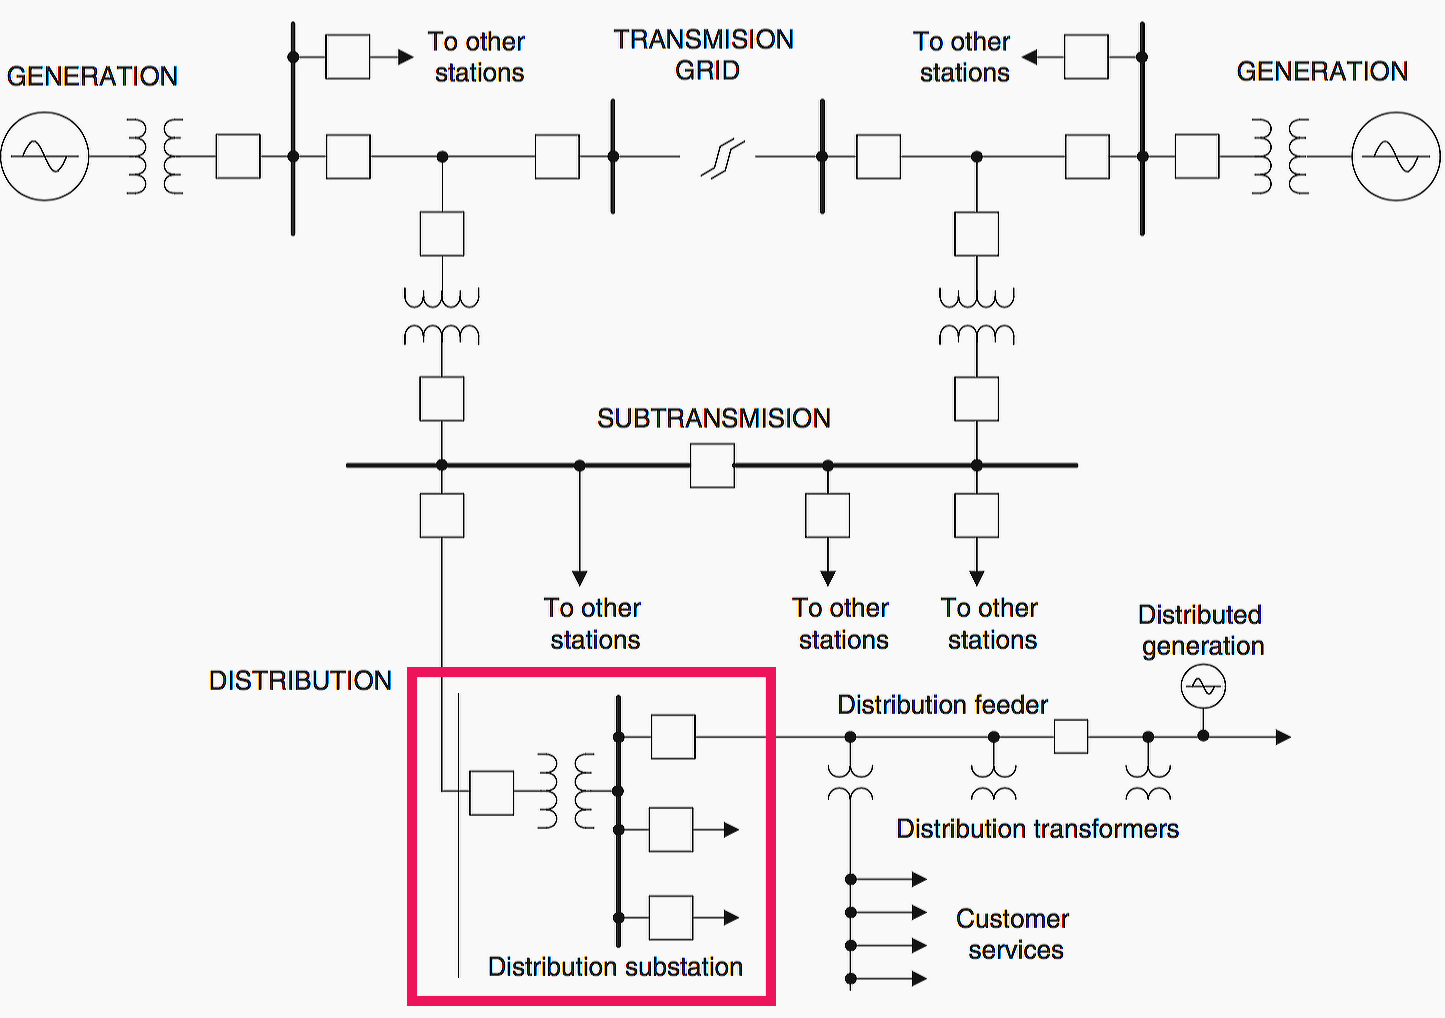 power plant one line diagram wiring diagram sample pv solar power plant diagram example of single line diagram [ 1445 x 1018 Pixel ]